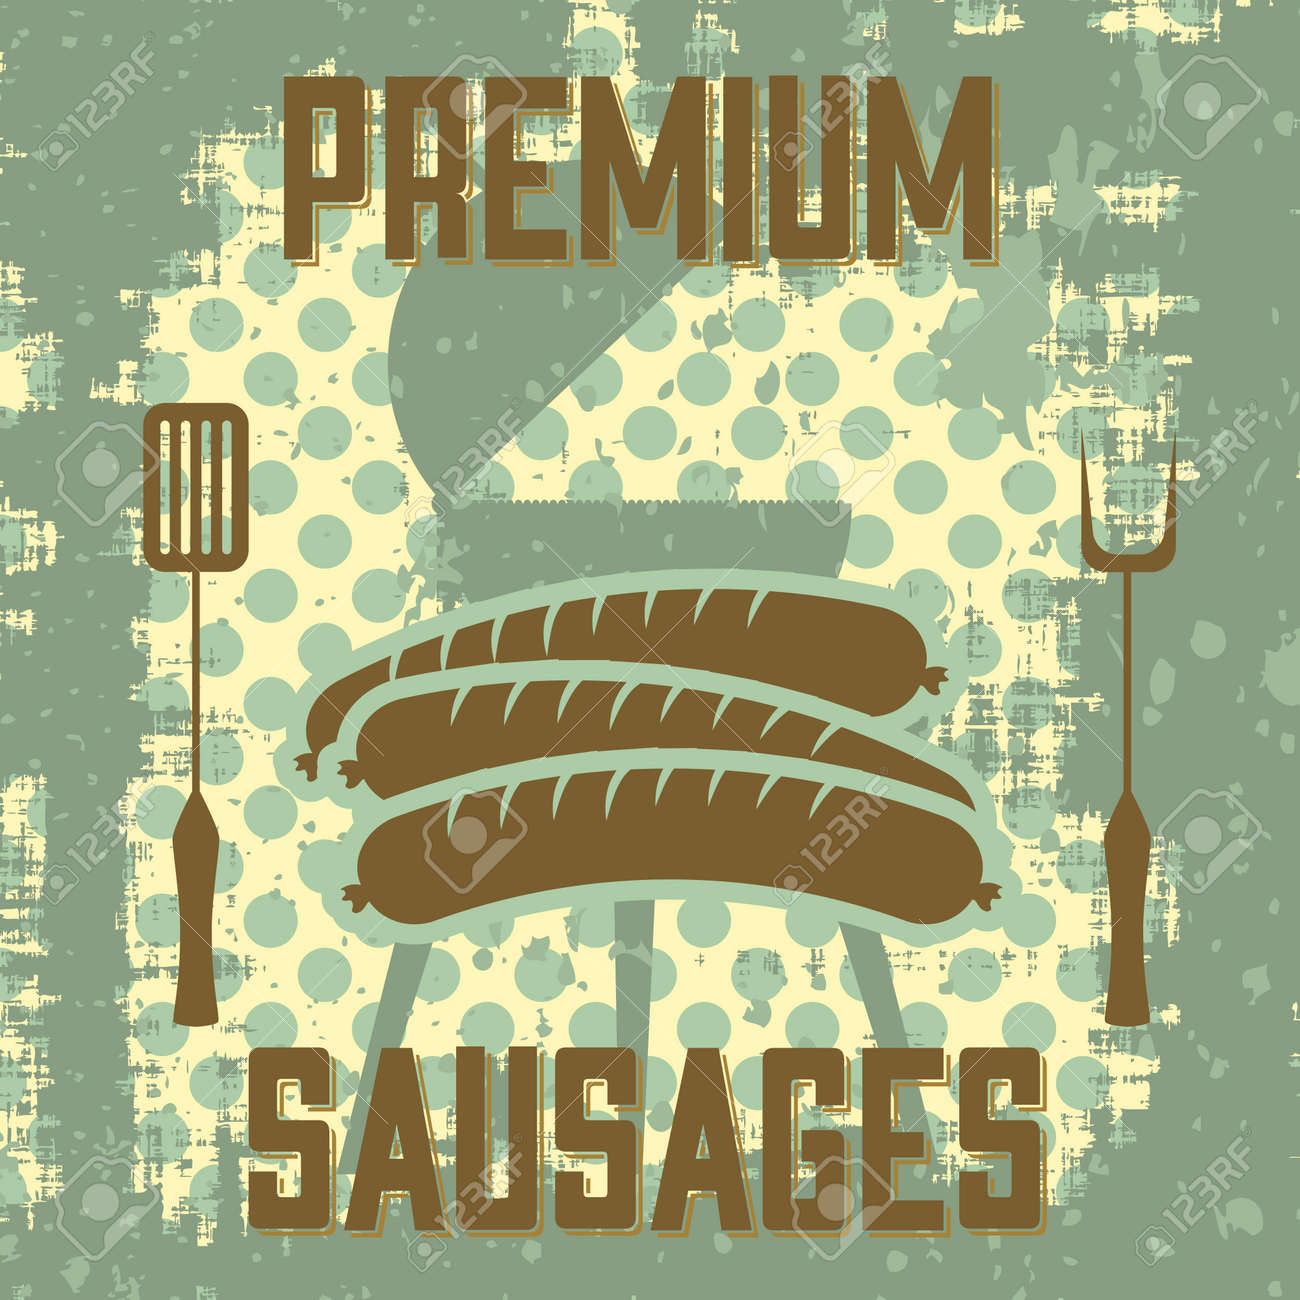 Vintage style poster with sausages Stock Vector - 23052129